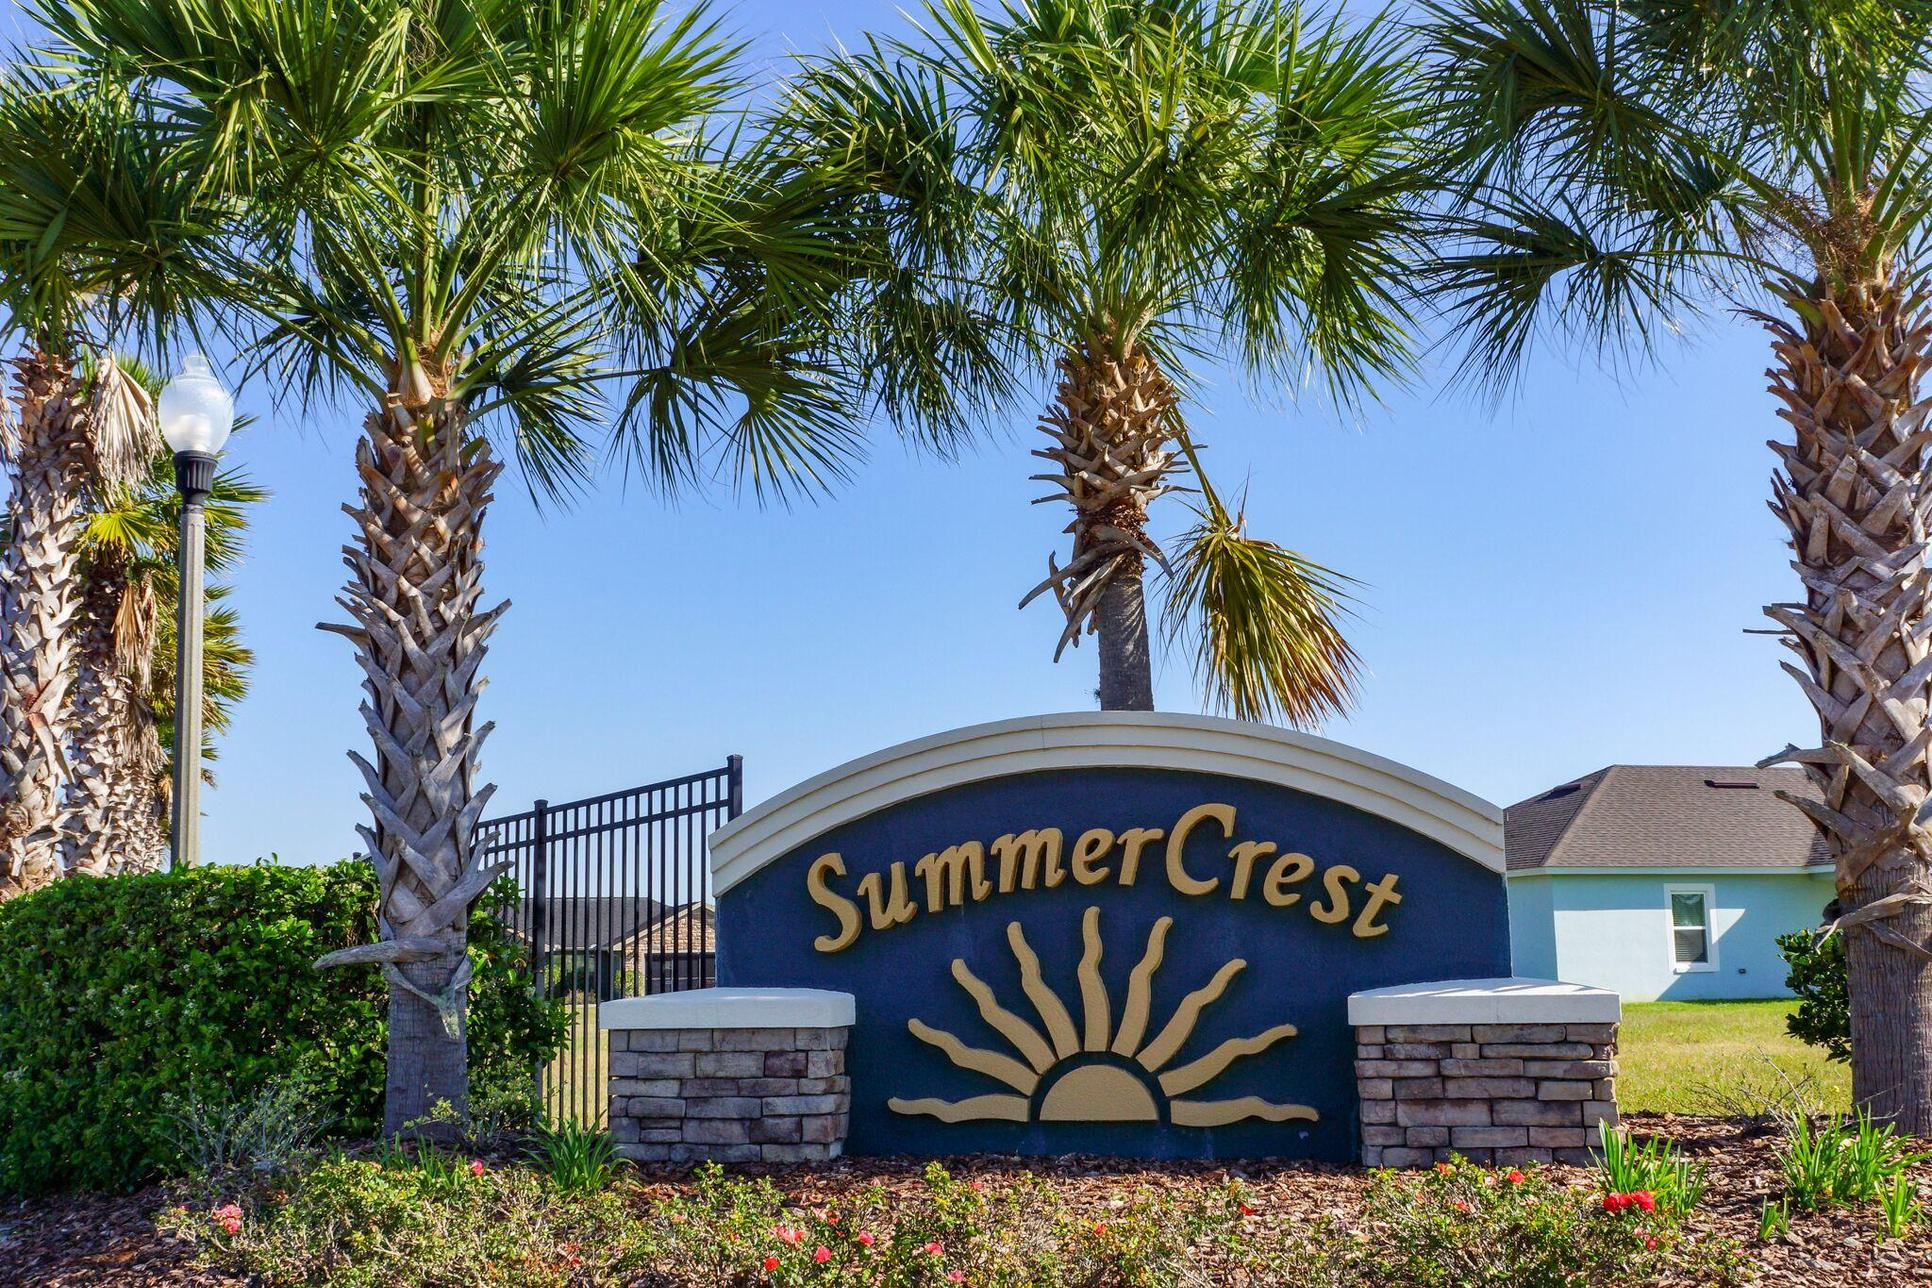 SummerCrest